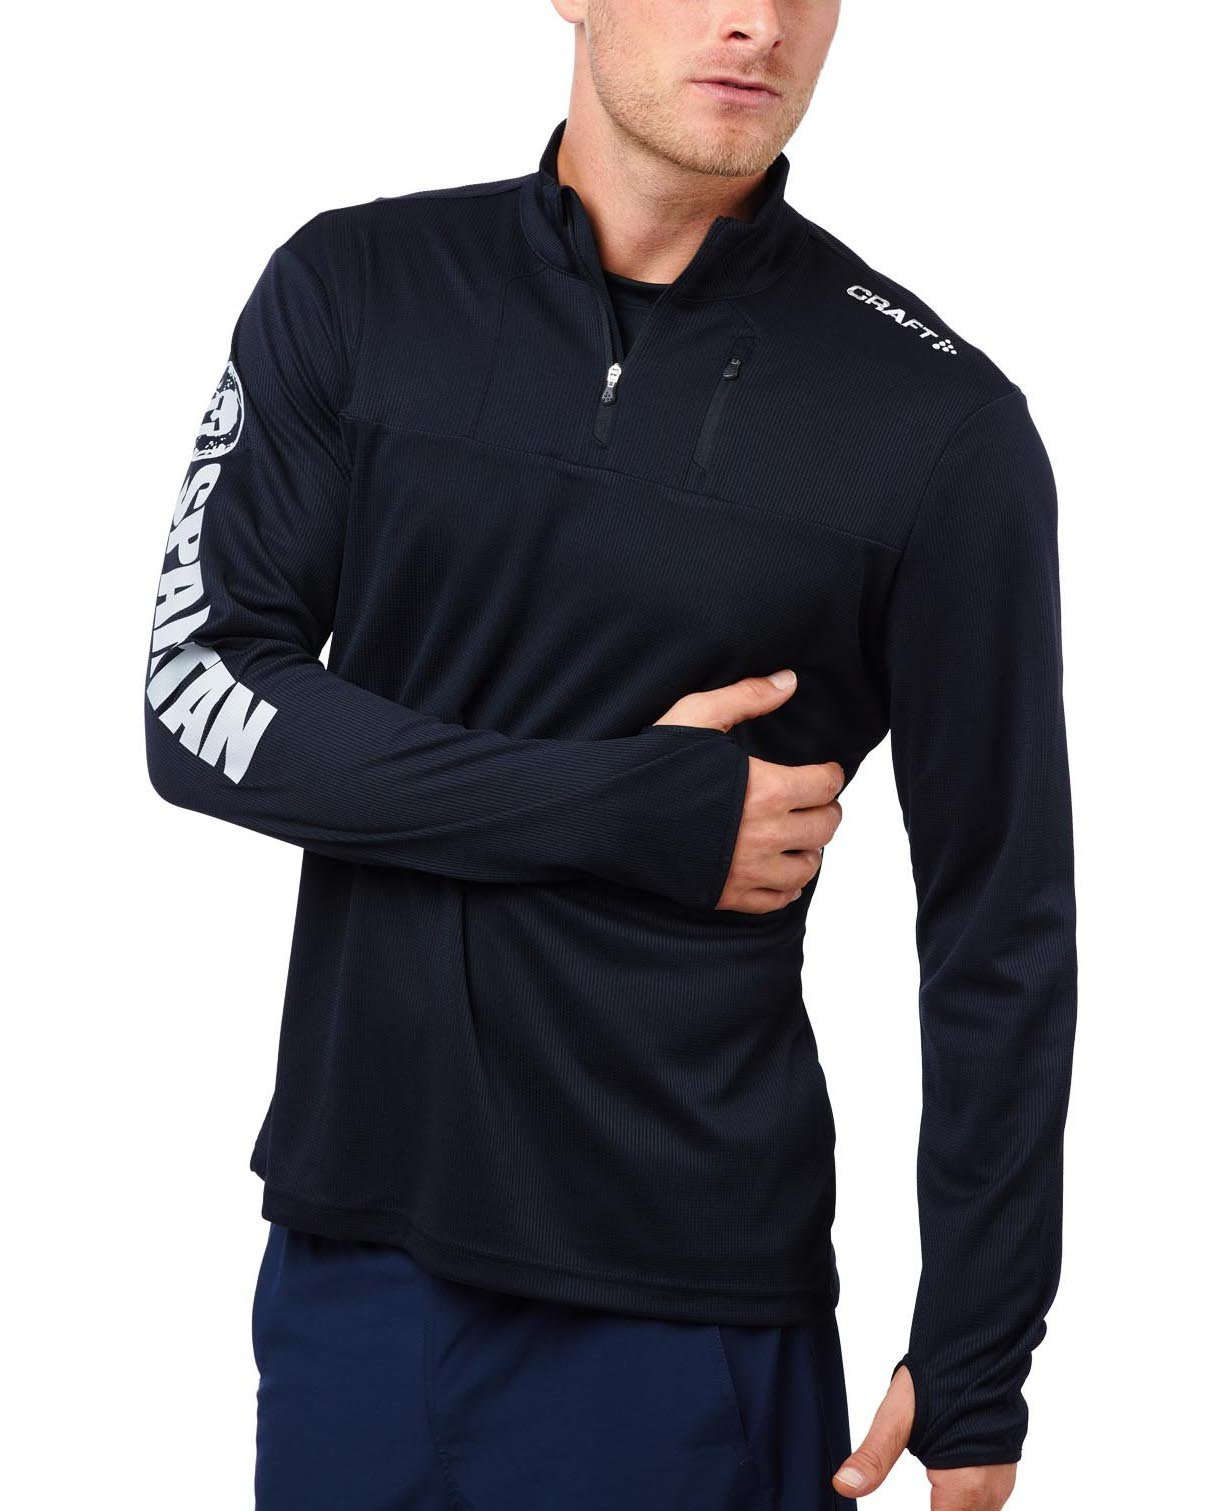 SPARTAN by CRAFT Blaze Half Zip